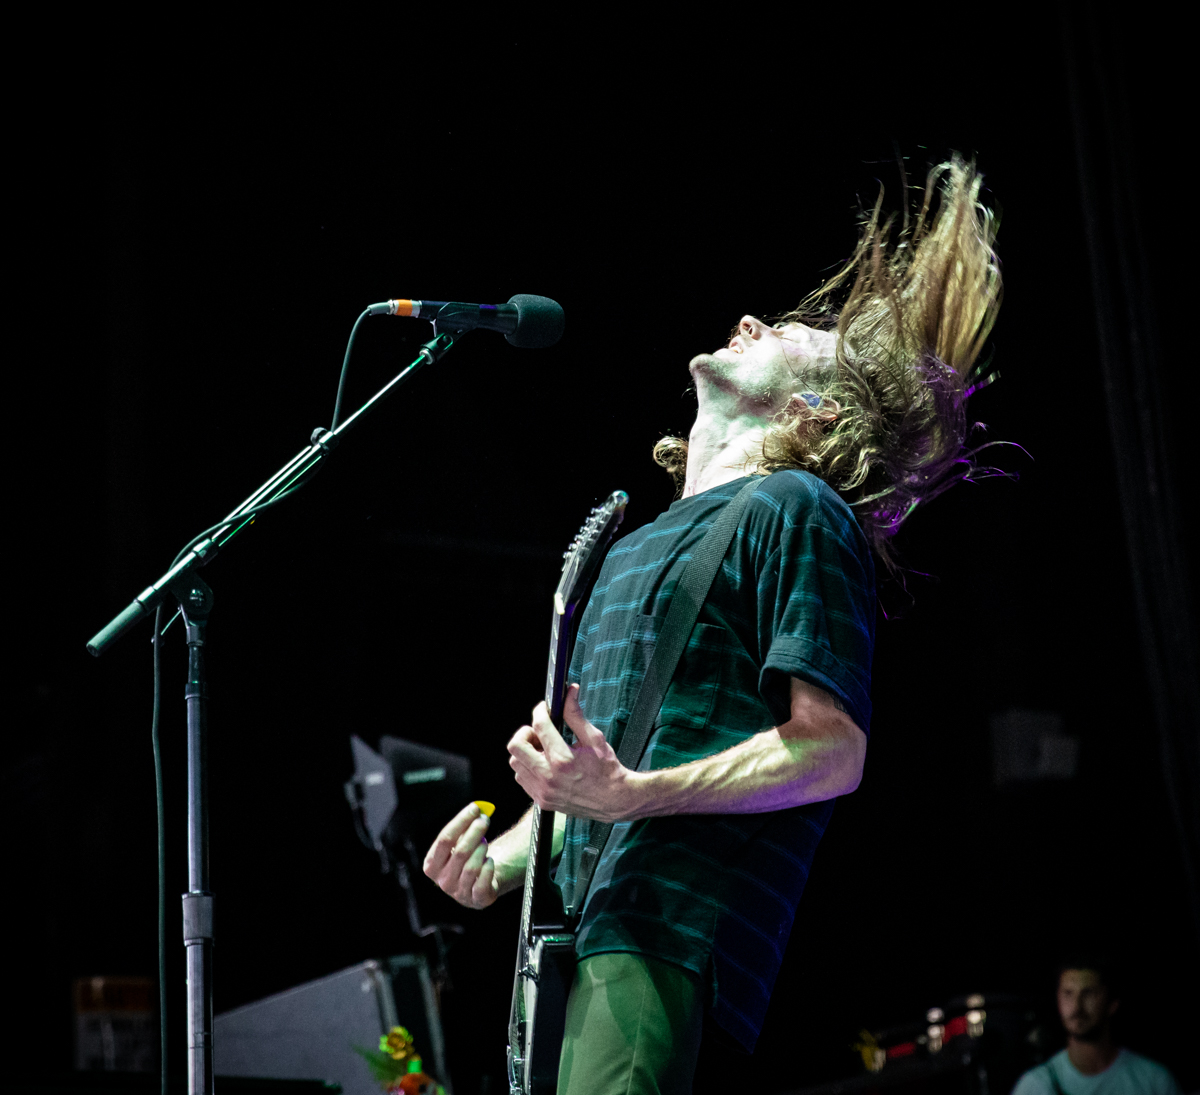 Matt Bigland of Dinosaur Pile-Up performs at Hollywood Casino Amphitheatre in Tinley Park, IL on 07/14/2019.